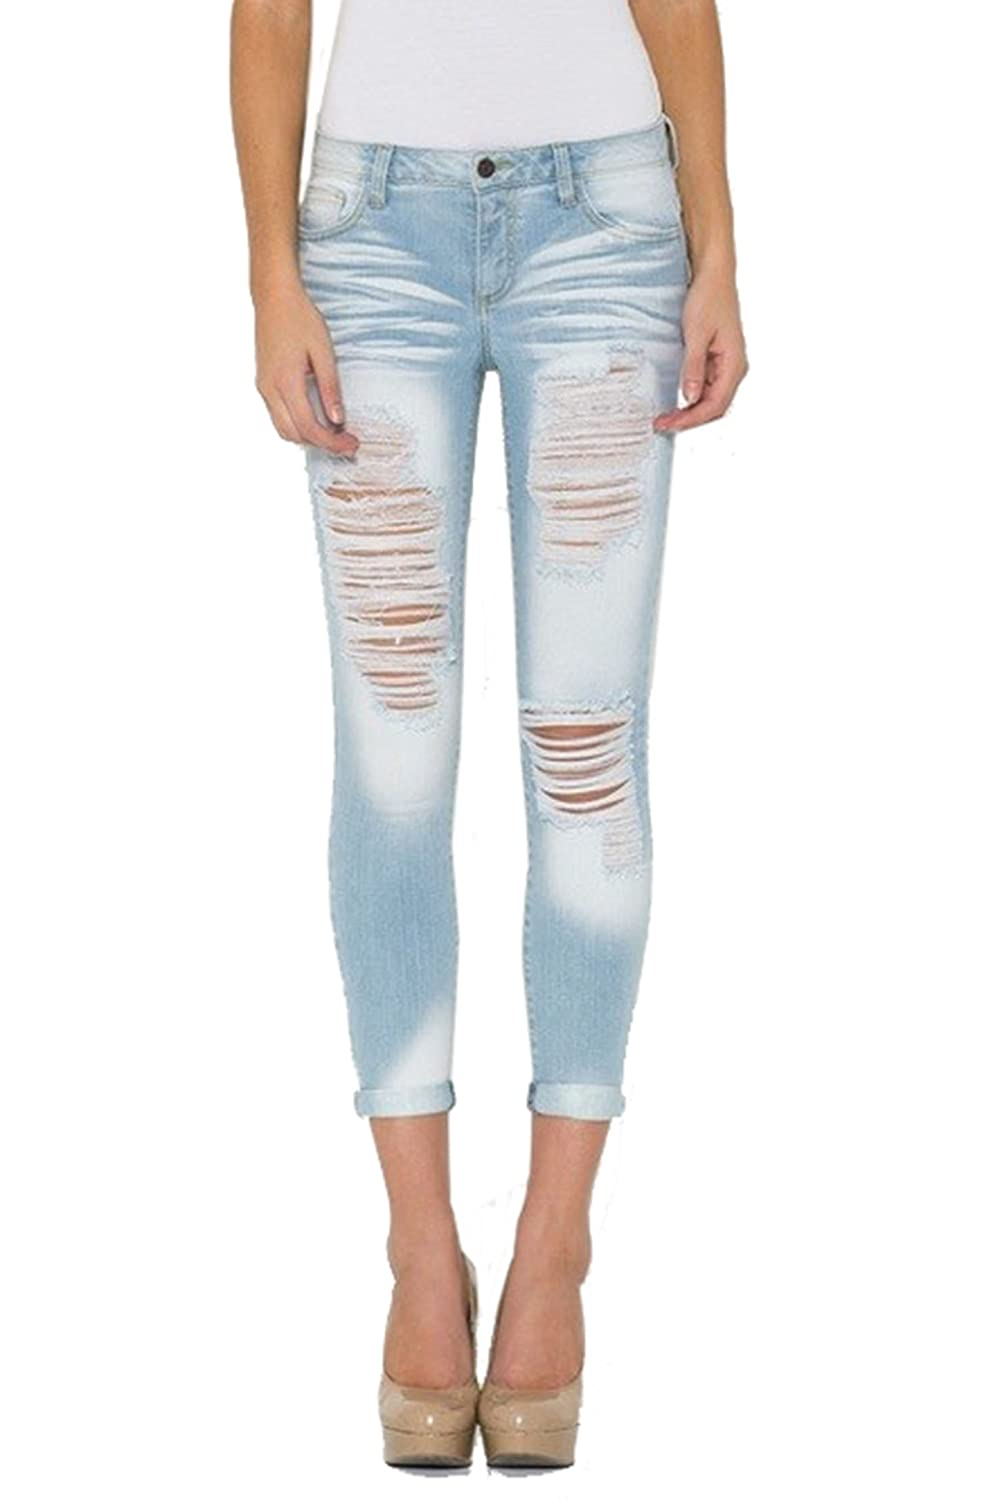 Cello Jeans Women's Light Distressed Cropped Skinny free shipping